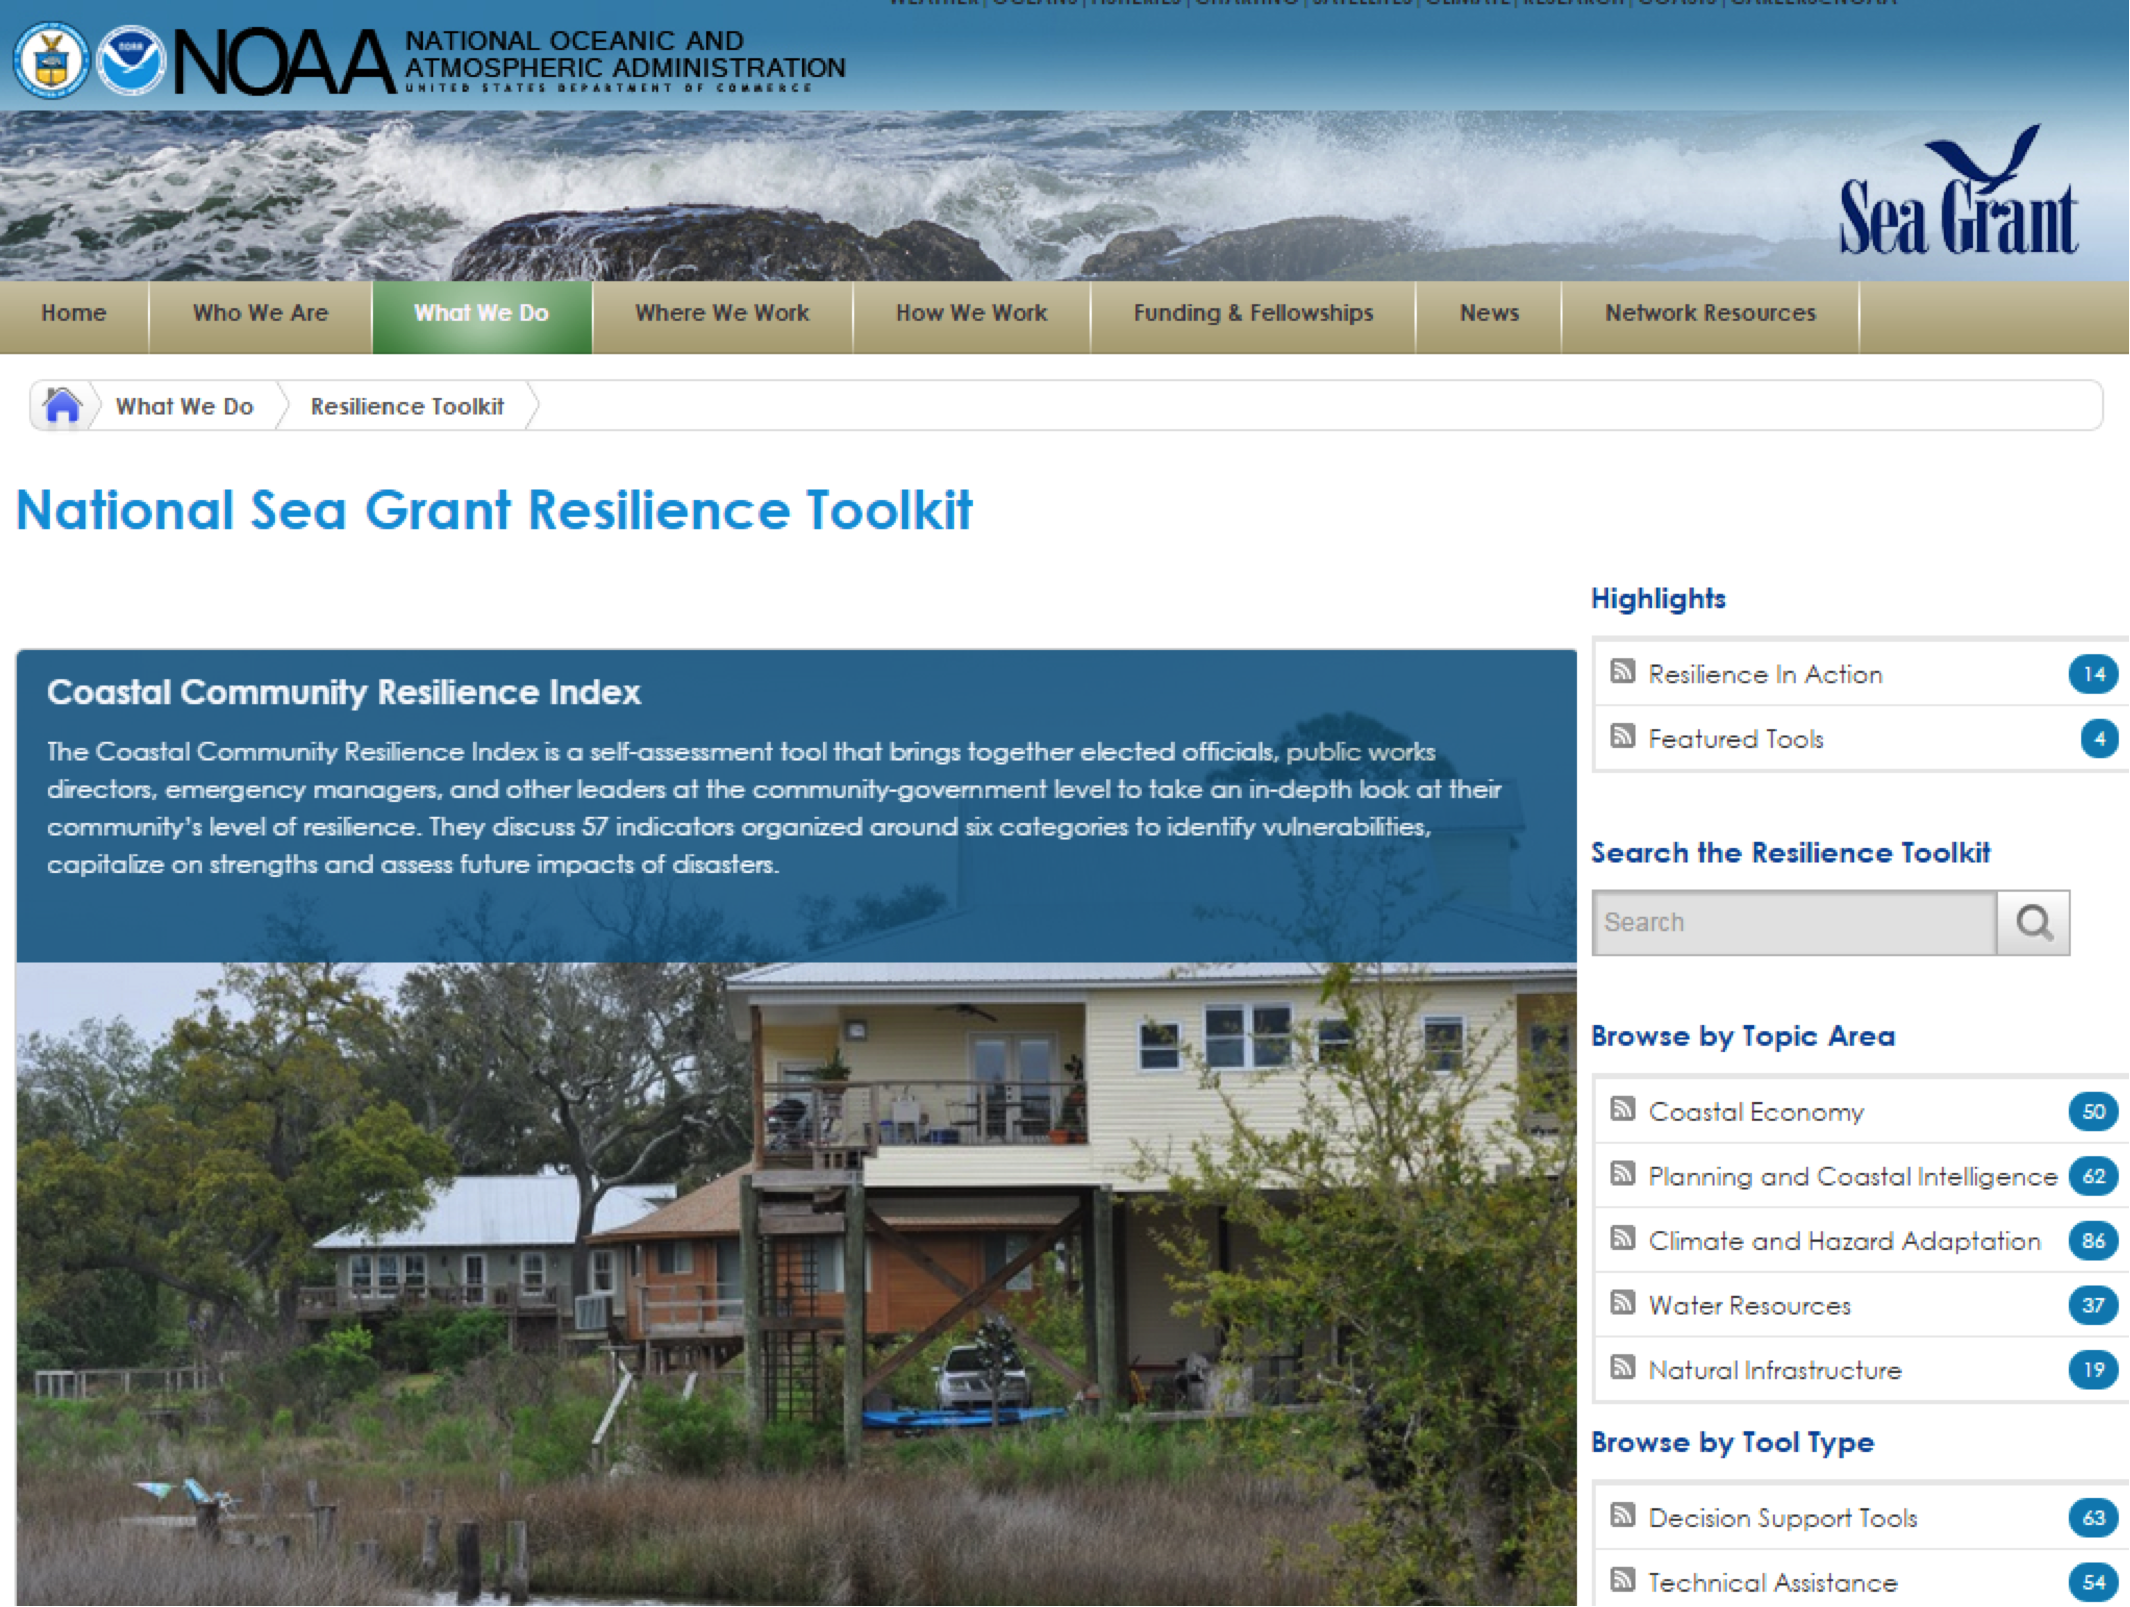 National Sea Grant Resilience Toolkit